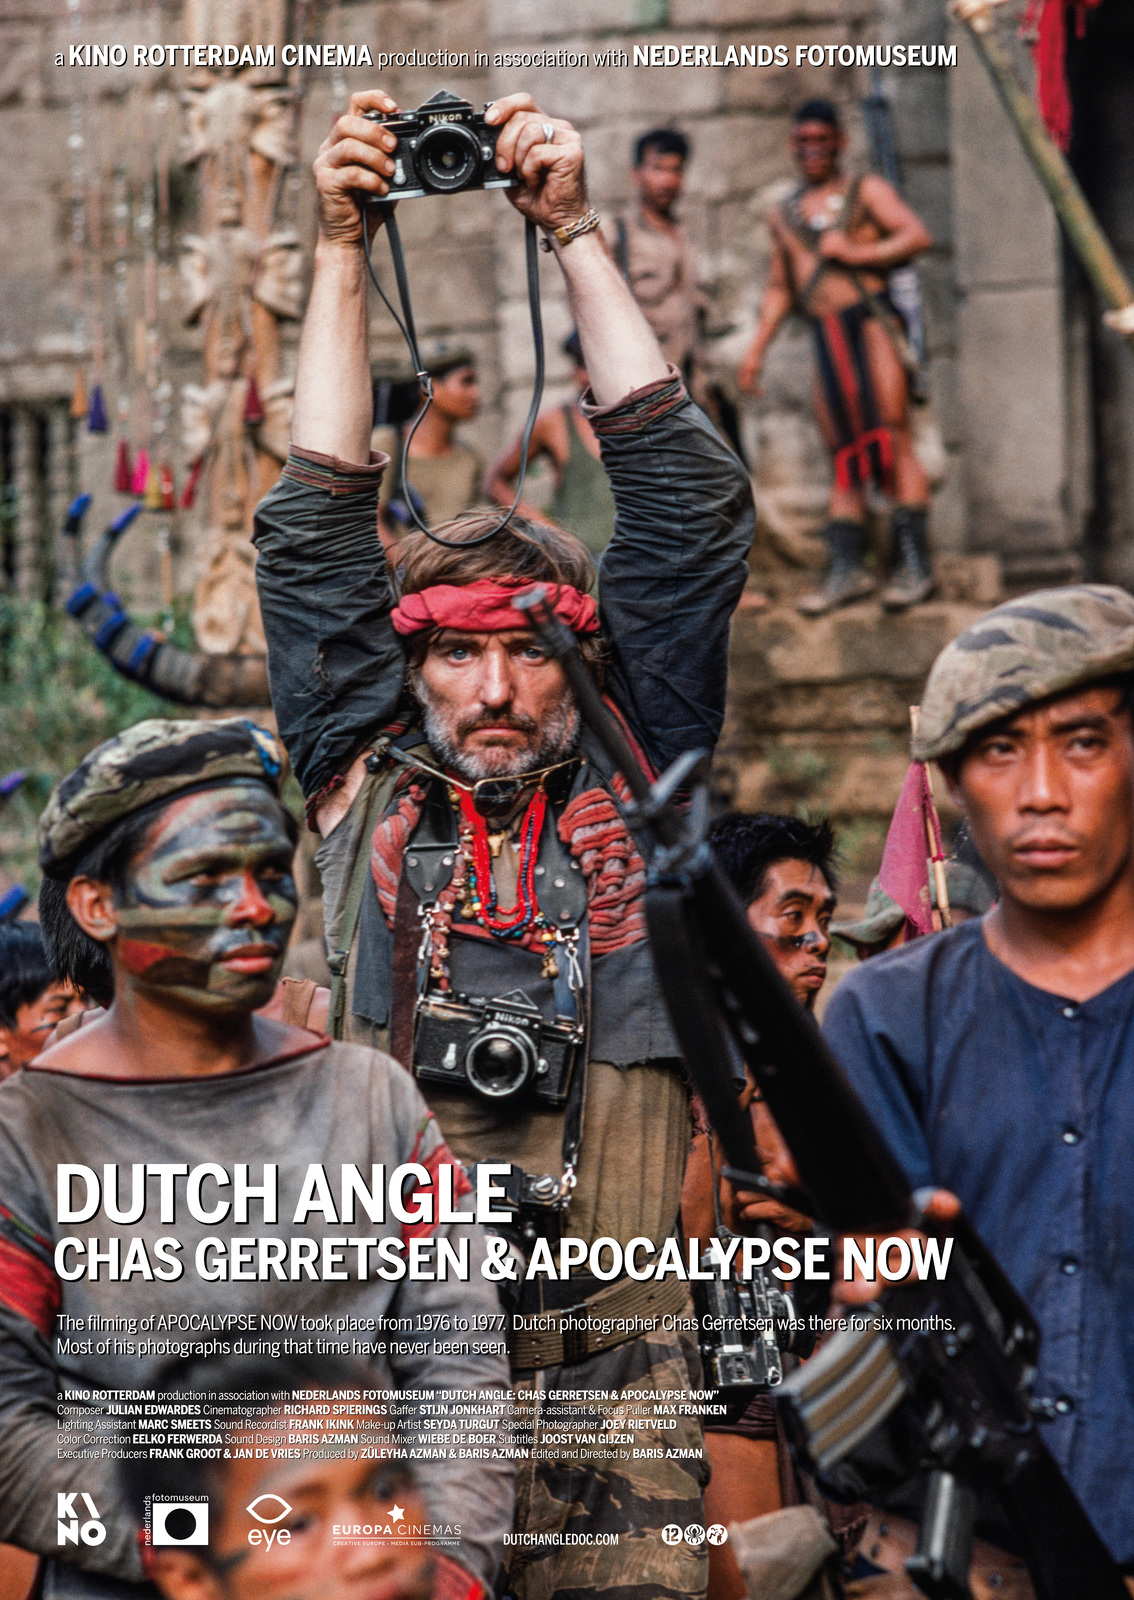 Dutch Angle: Chas Gerritsen & Apocalypse Now